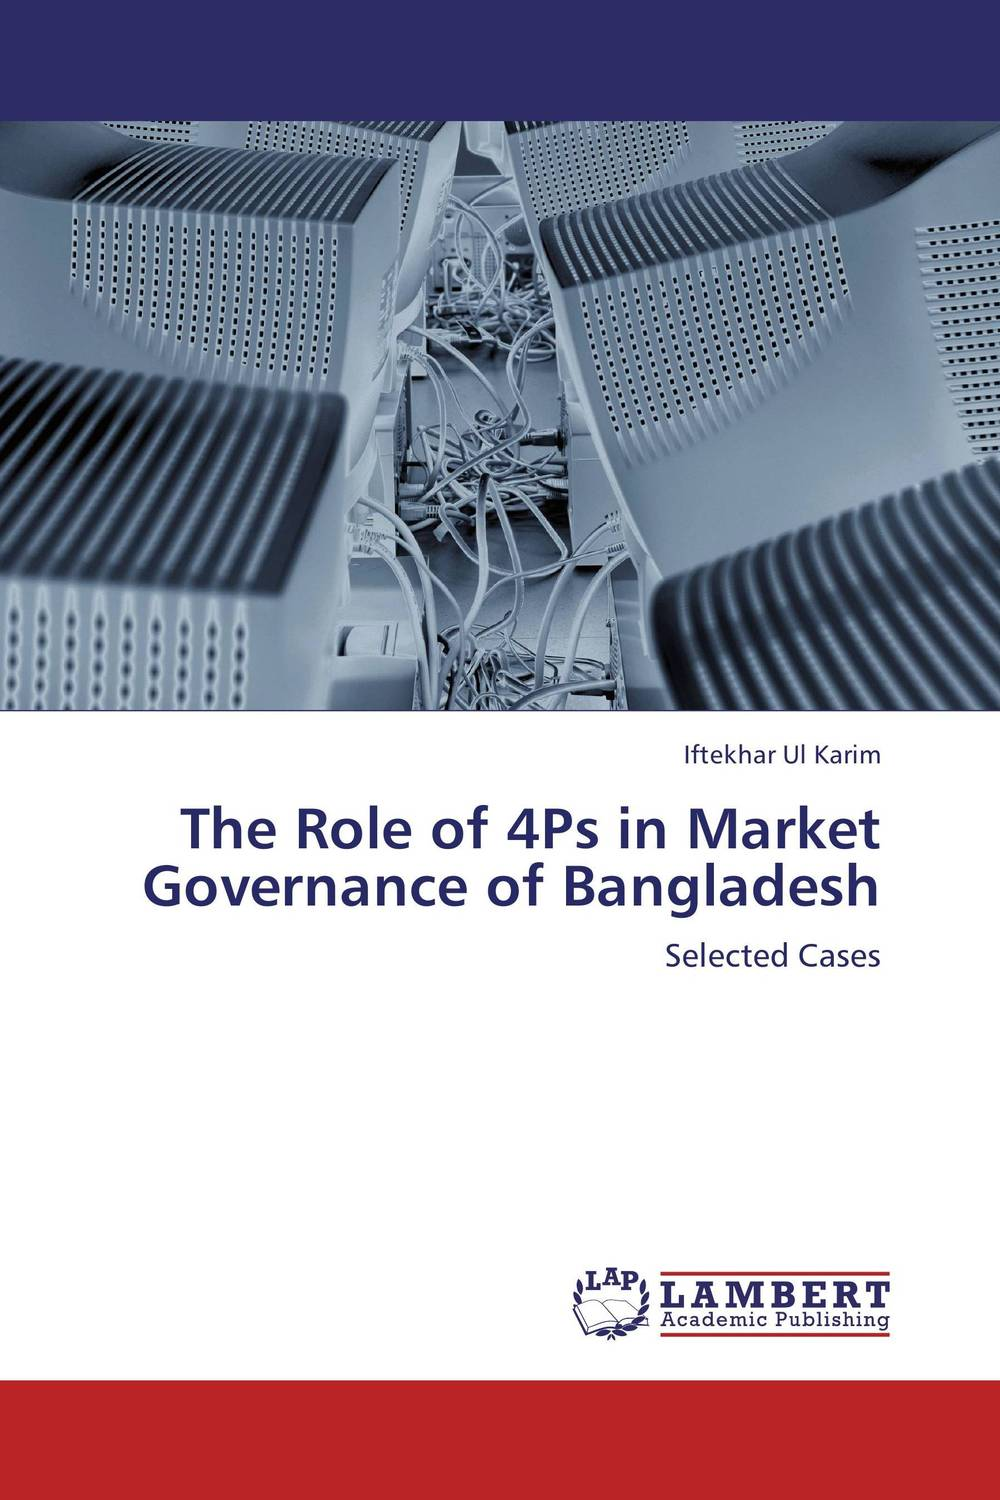 The Role of 4Ps in Market Governance of Bangladesh governance and development roles of community radio in ethiopia